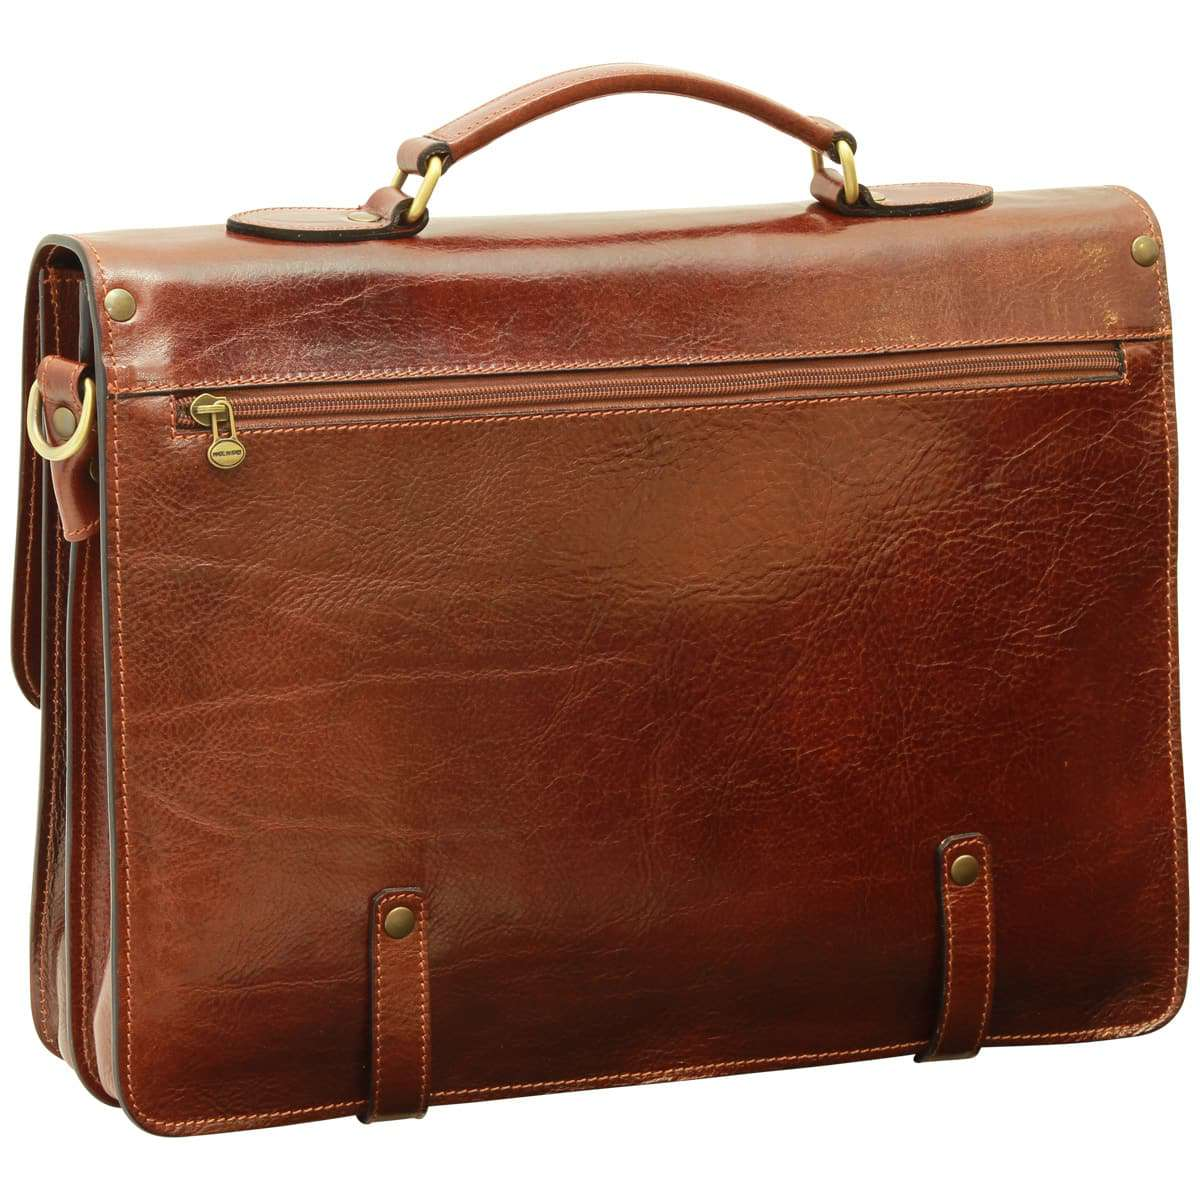 Leather Briefcase with buckle closures - Brown | 005305MA W | Old Angler Firenze